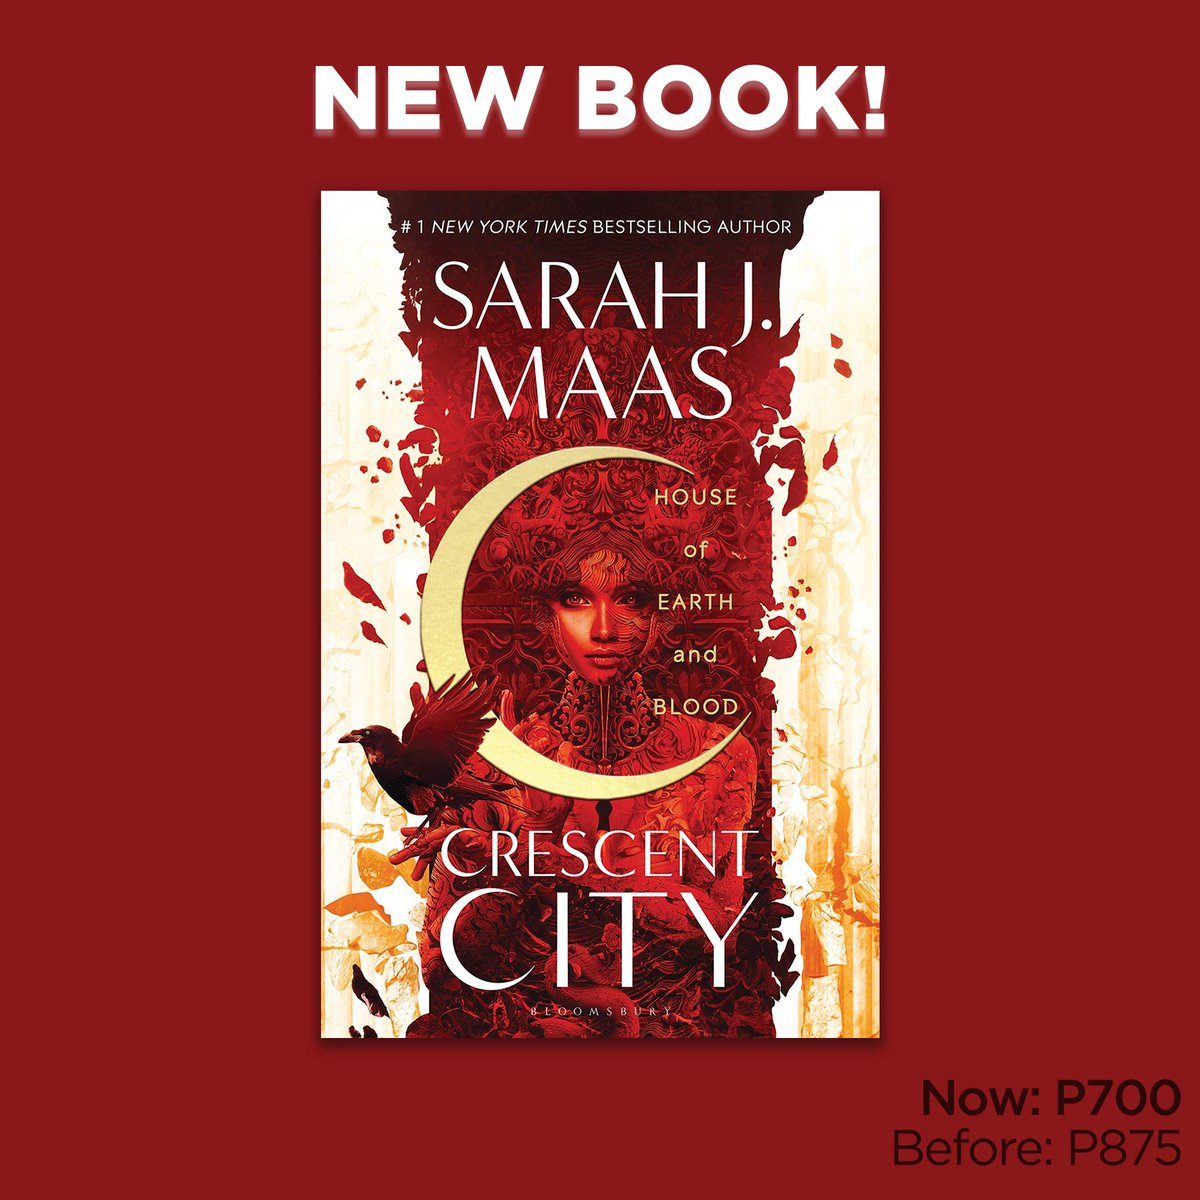 Only P700 (before: P875) for House of Earth and Blood (Crescent City #1) by Sarah J. Maas. Get it in selected branches or shop online now: .  #NBSNewReads #NBSfinds #NBSeveryday